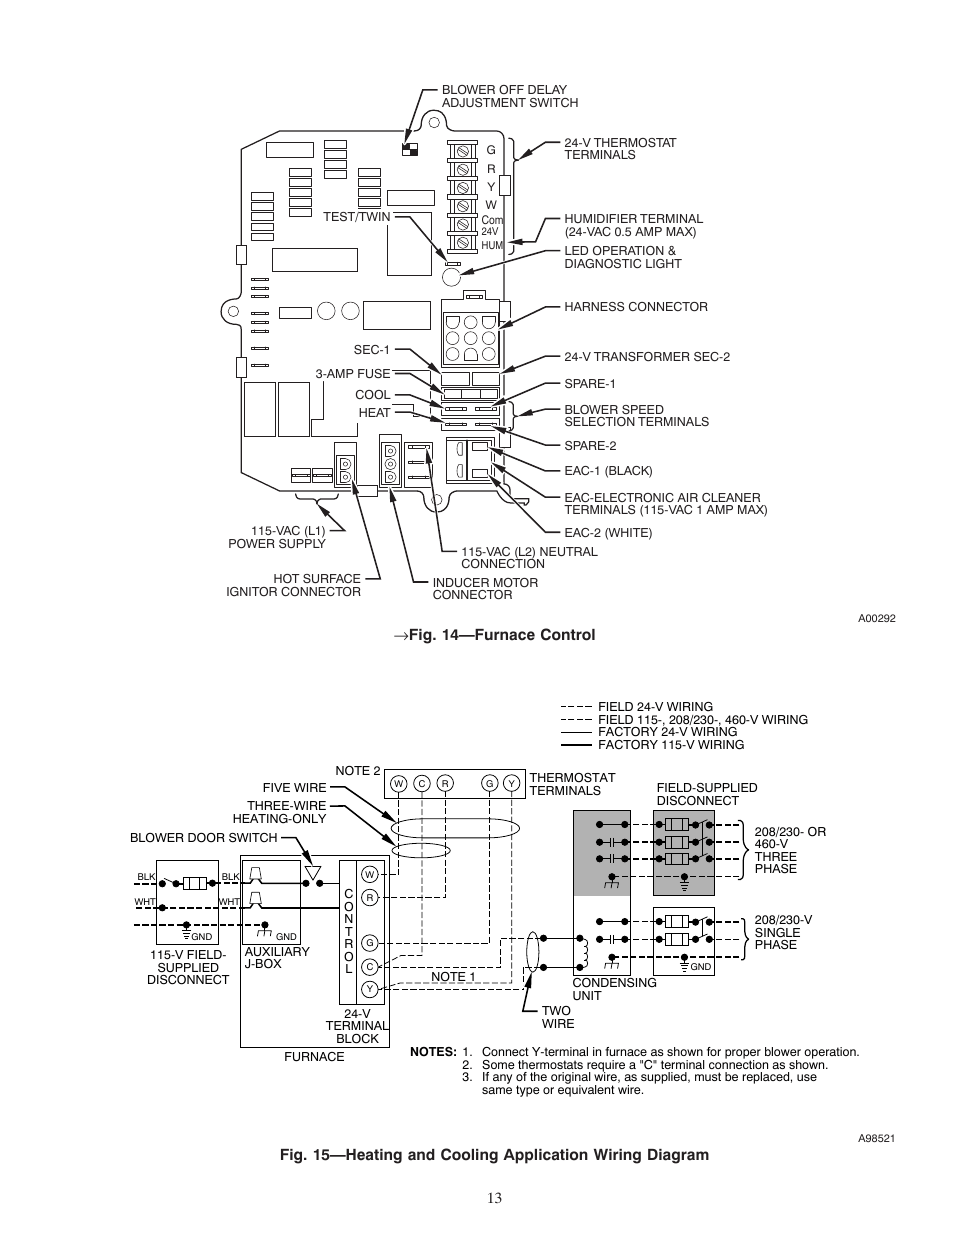 carrier weathermaker 8000 58zav page13?resize\\\\\\\=665%2C861 intertherm electric furnace wiring diagram & intertherm electric general electric furnace wiring diagram at panicattacktreatment.co